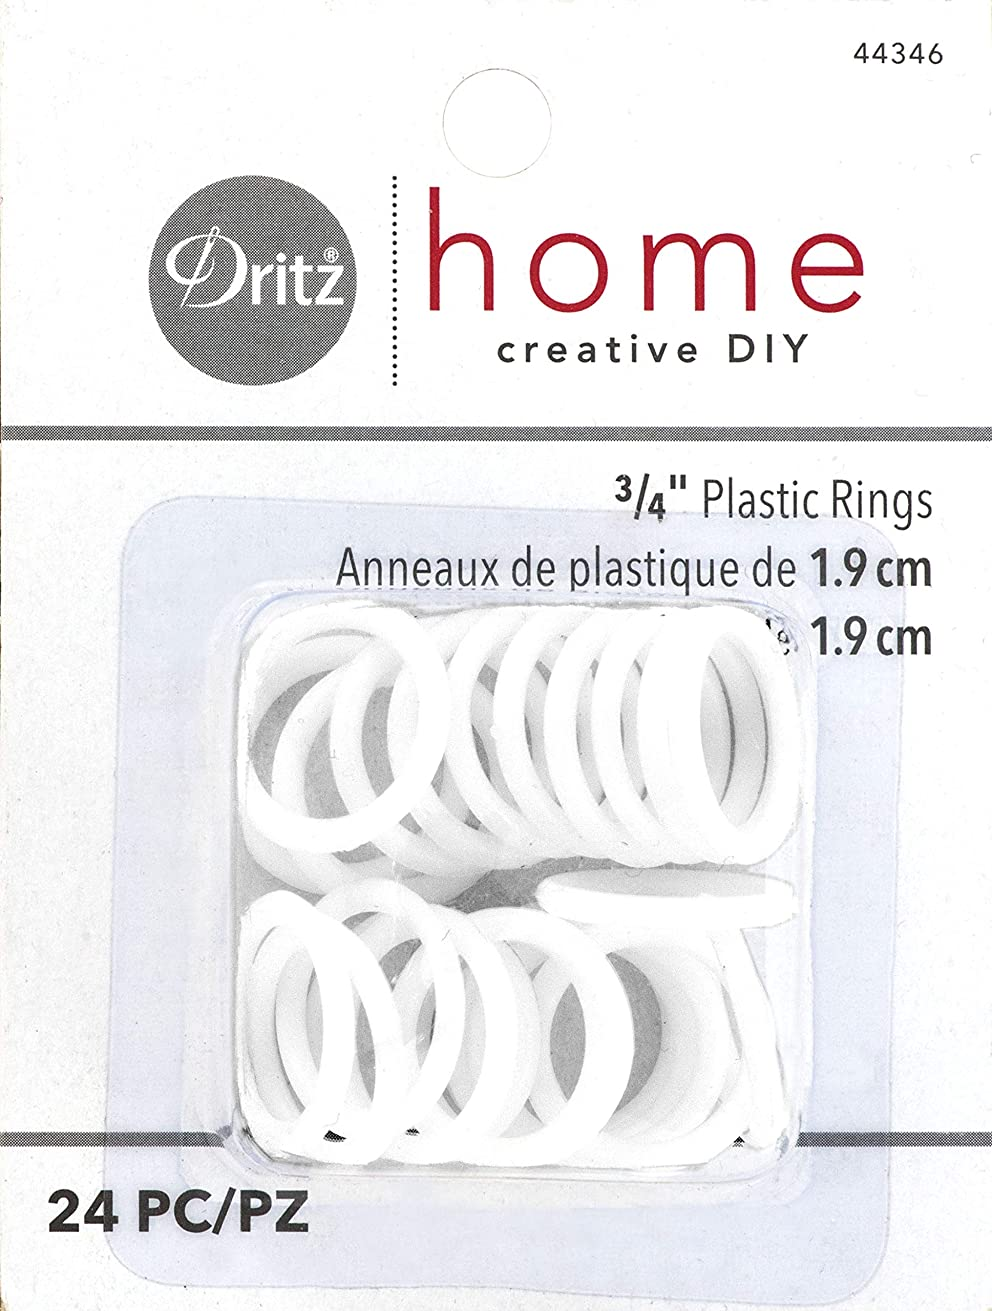 Dritz Home 44346 Plastic Rings, 3/4-Inch, White (24-Piece)